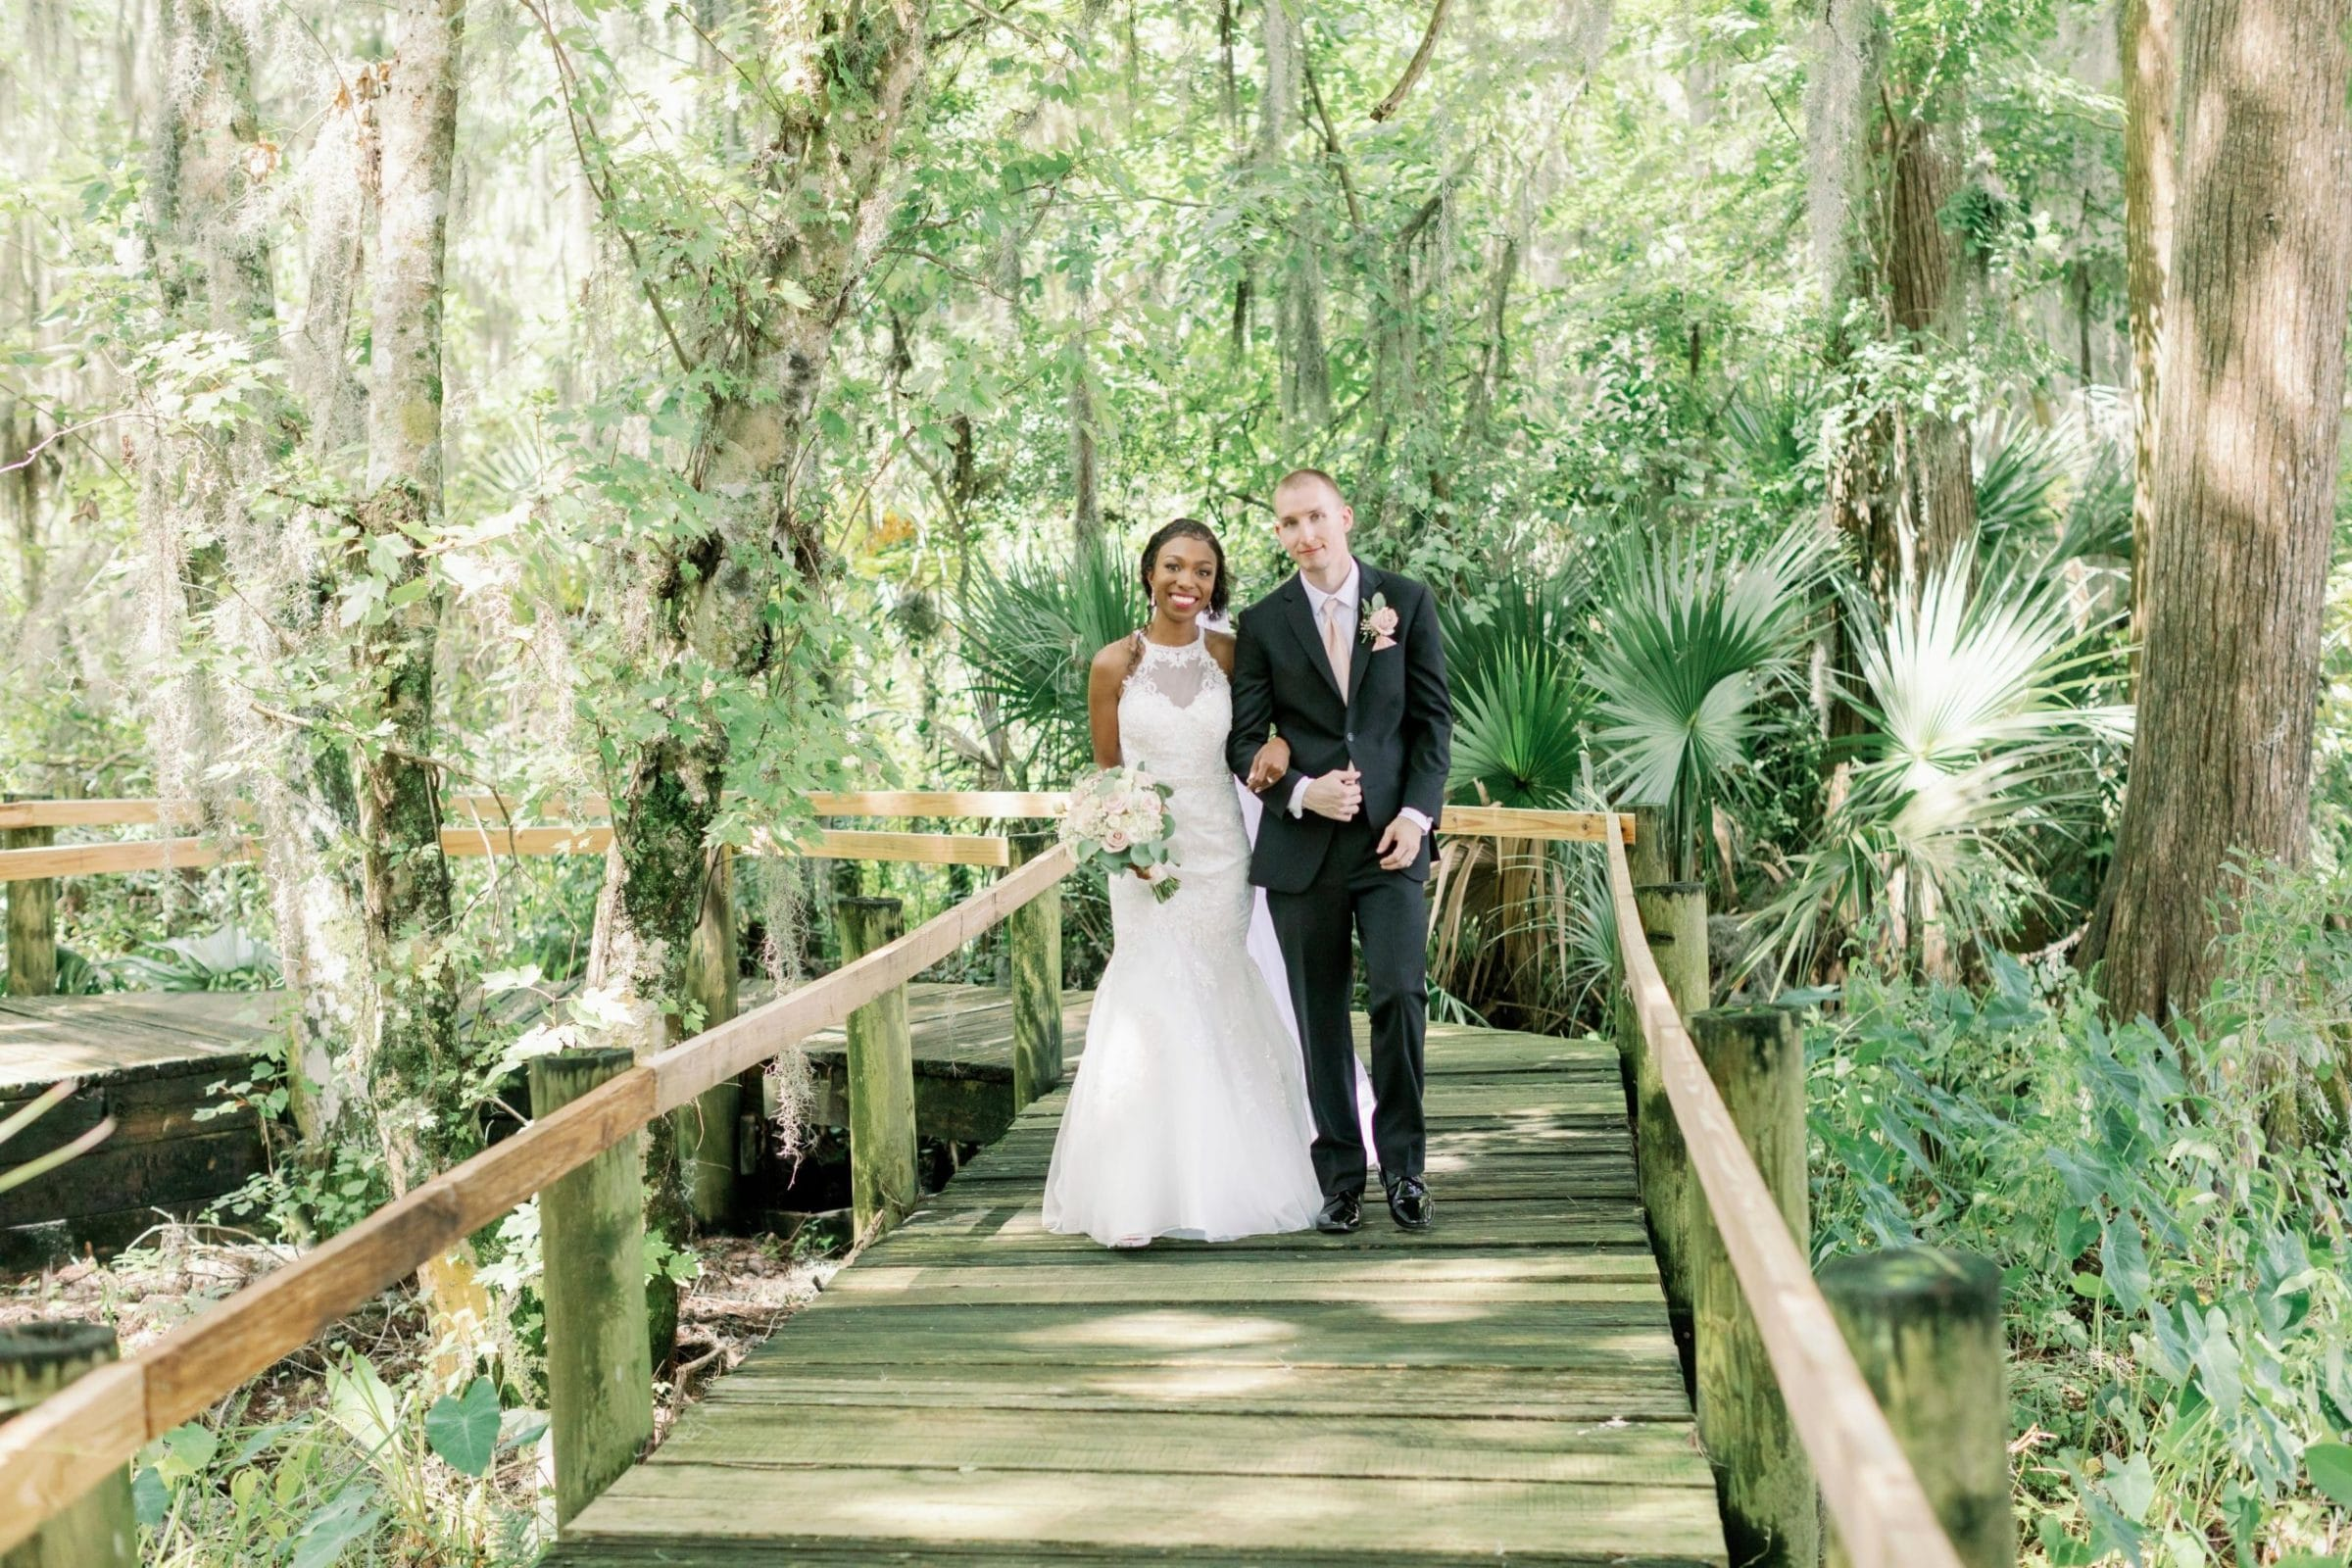 Walking on Boardwalk with Spanish Moss